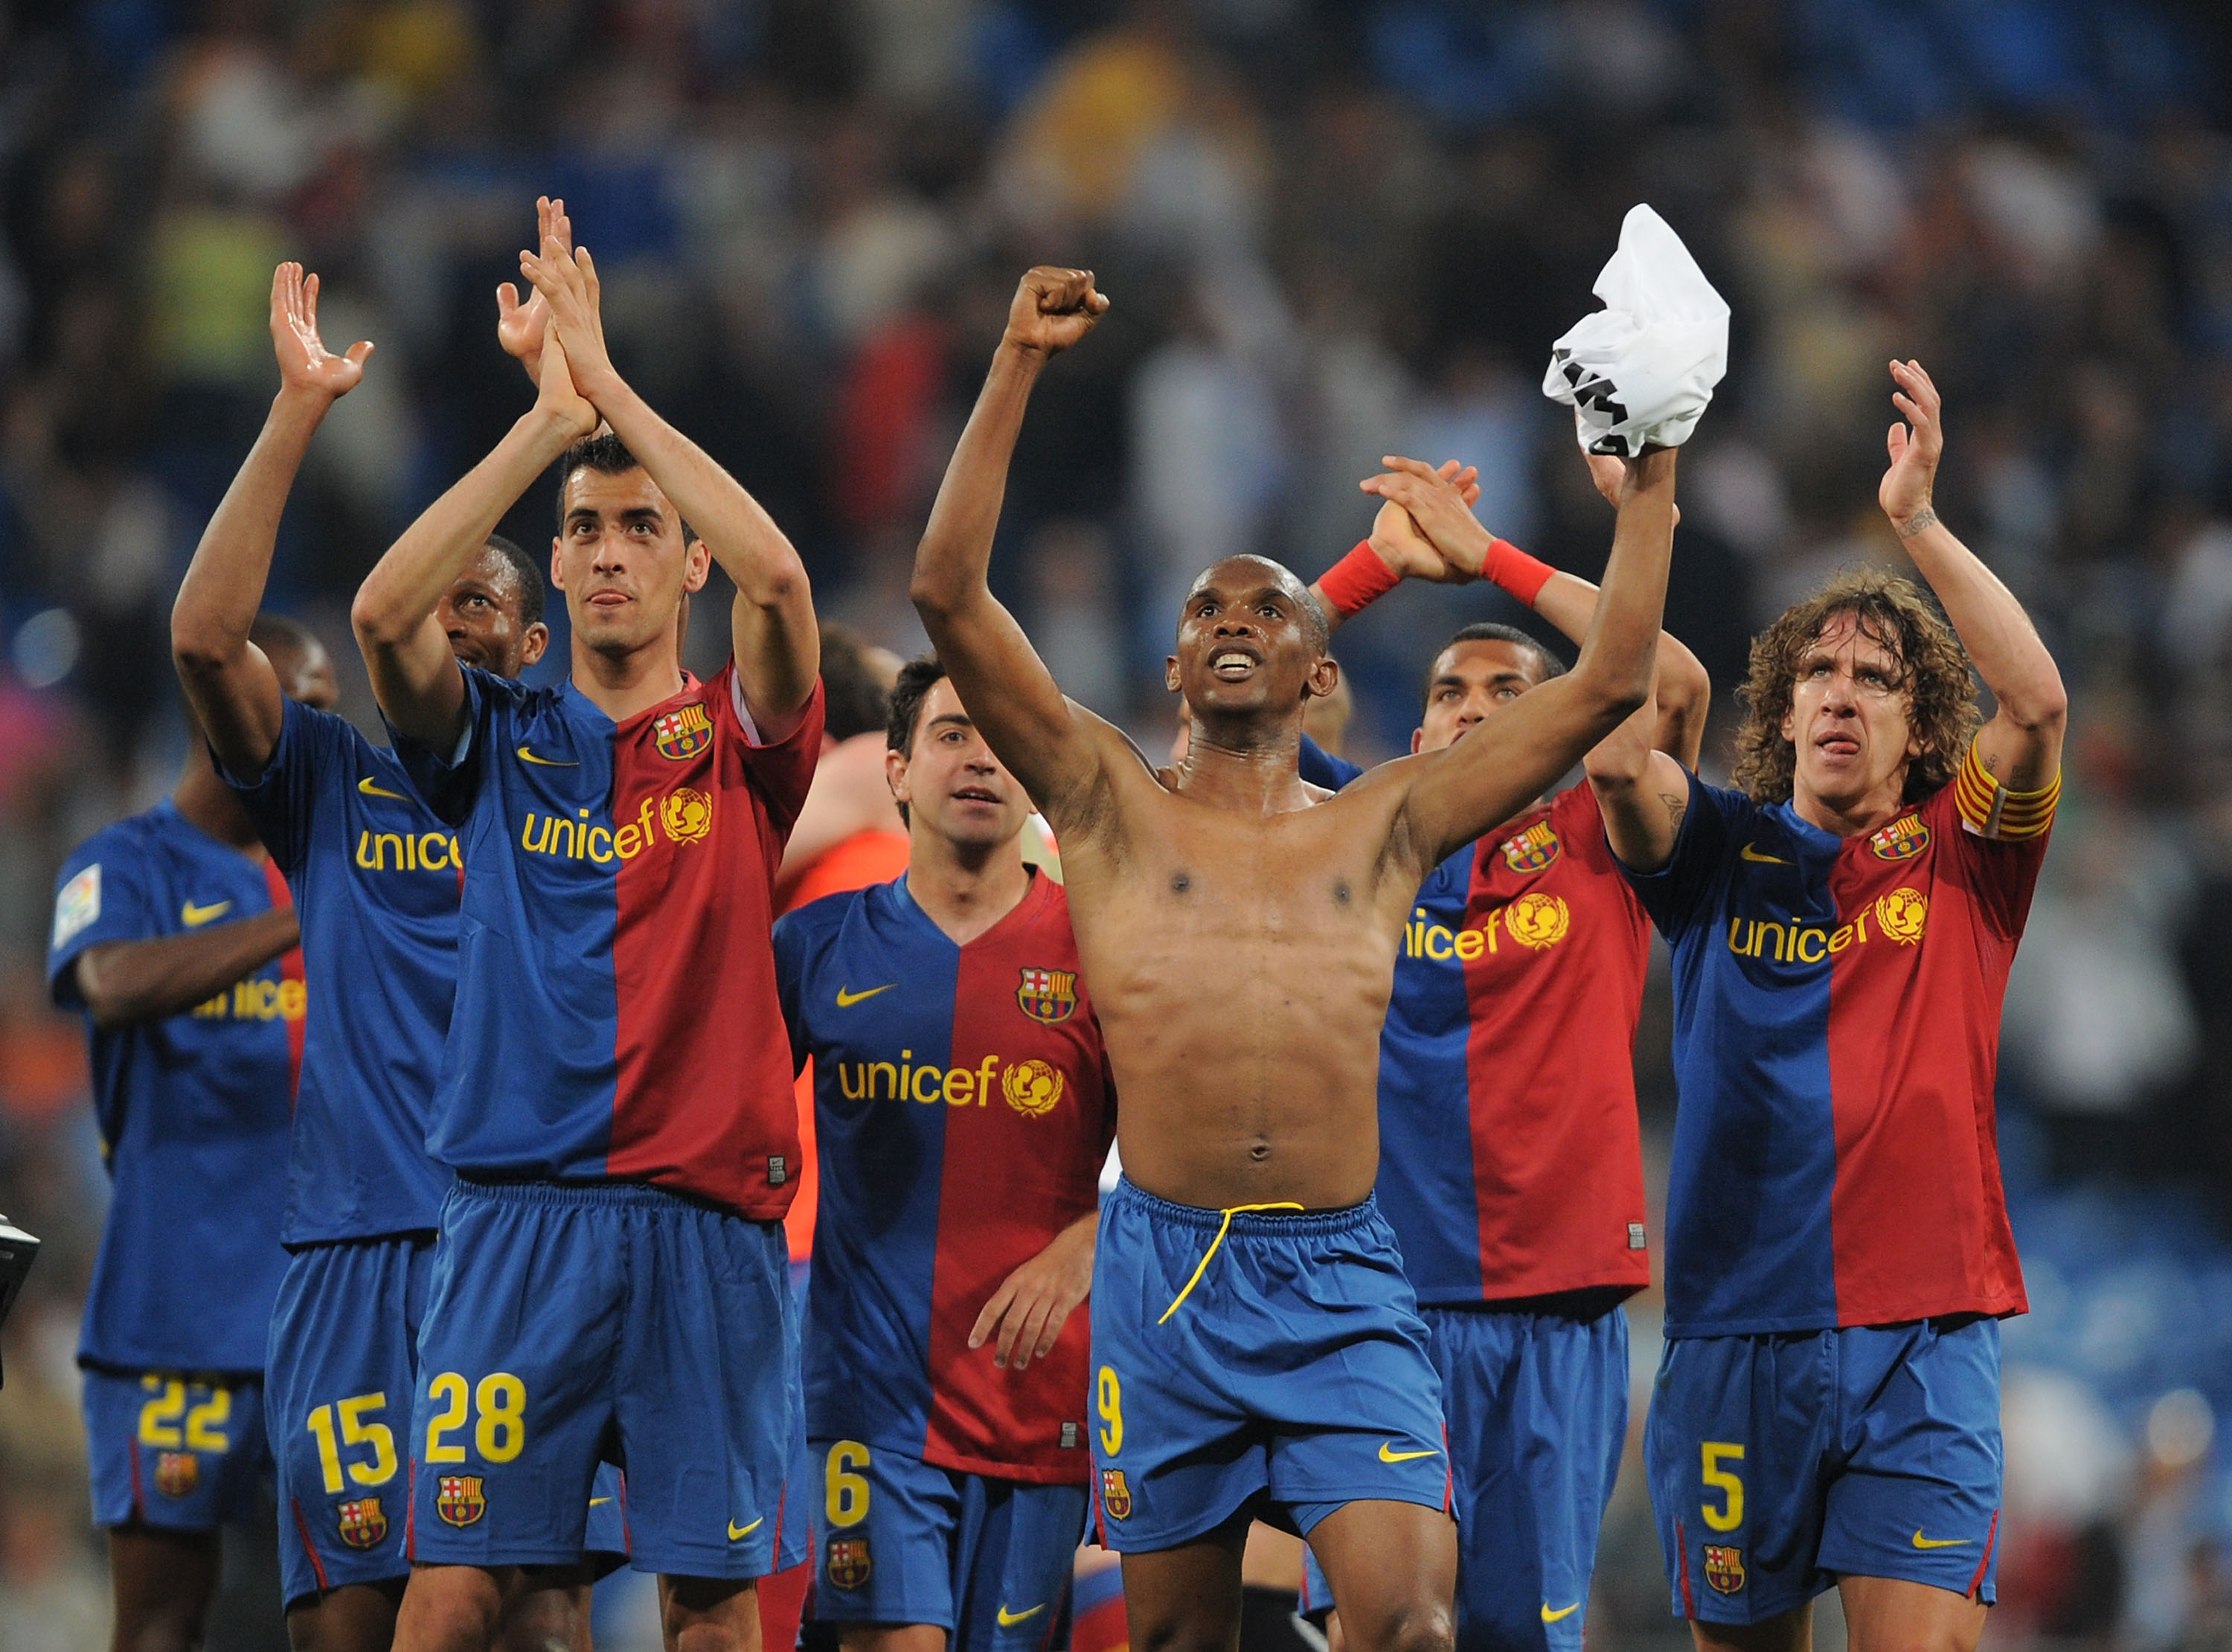 MADRID, SPAIN - MAY 02:  Samuel Eto'o (#9) Sergio Busquets (#28) and Carles Puyol (#5) of Barcelona celebrate after Barcelona beat Real 6-1 during the La Liga match between Real Madrid and Barcelona at the Santiago Bernabeu stadium on May 2, 2009 in Madri